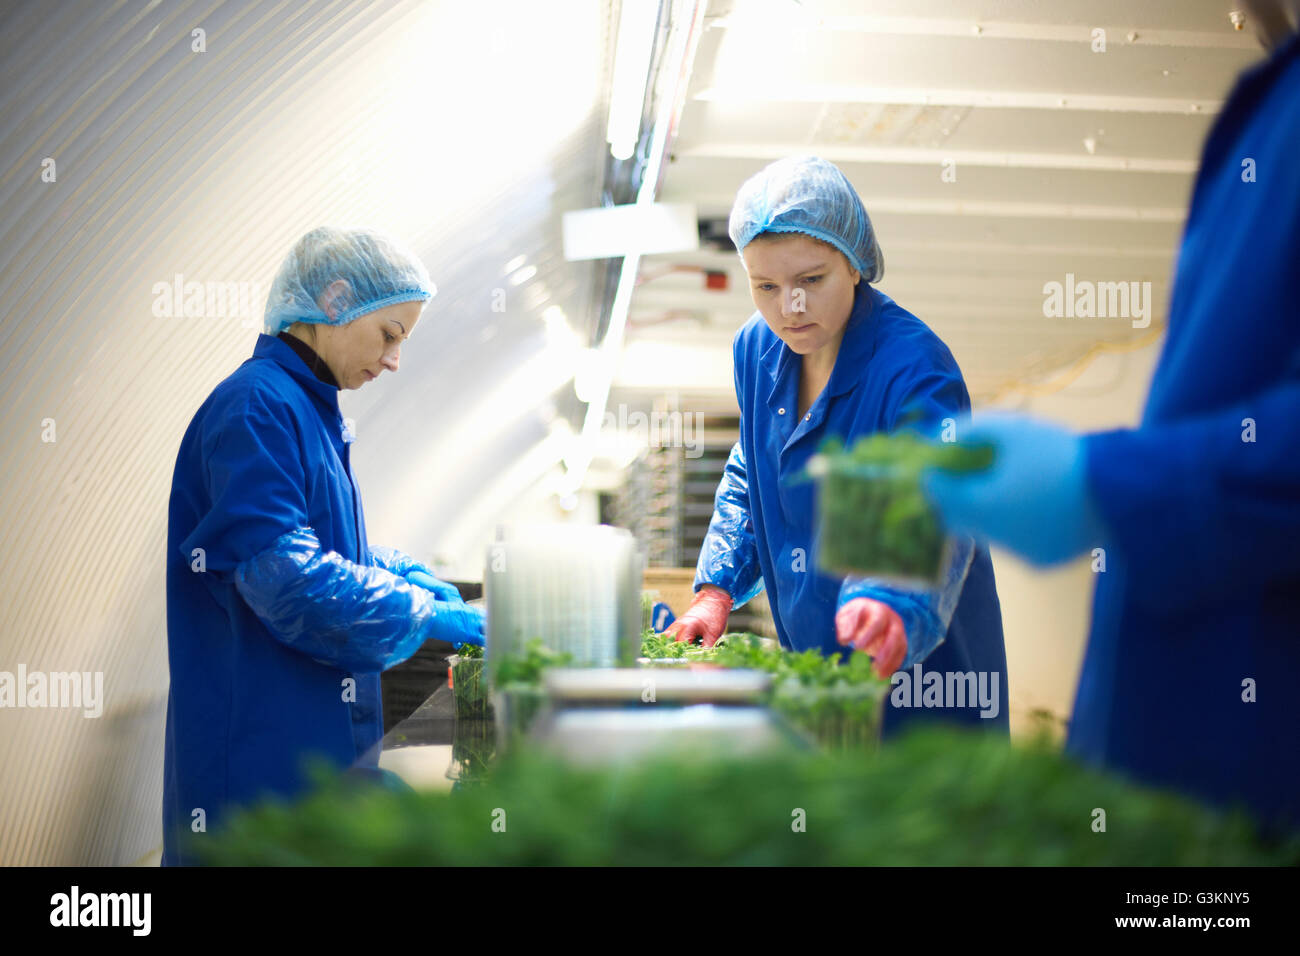 Women wearing working on production line, packing vegetables - Stock Image